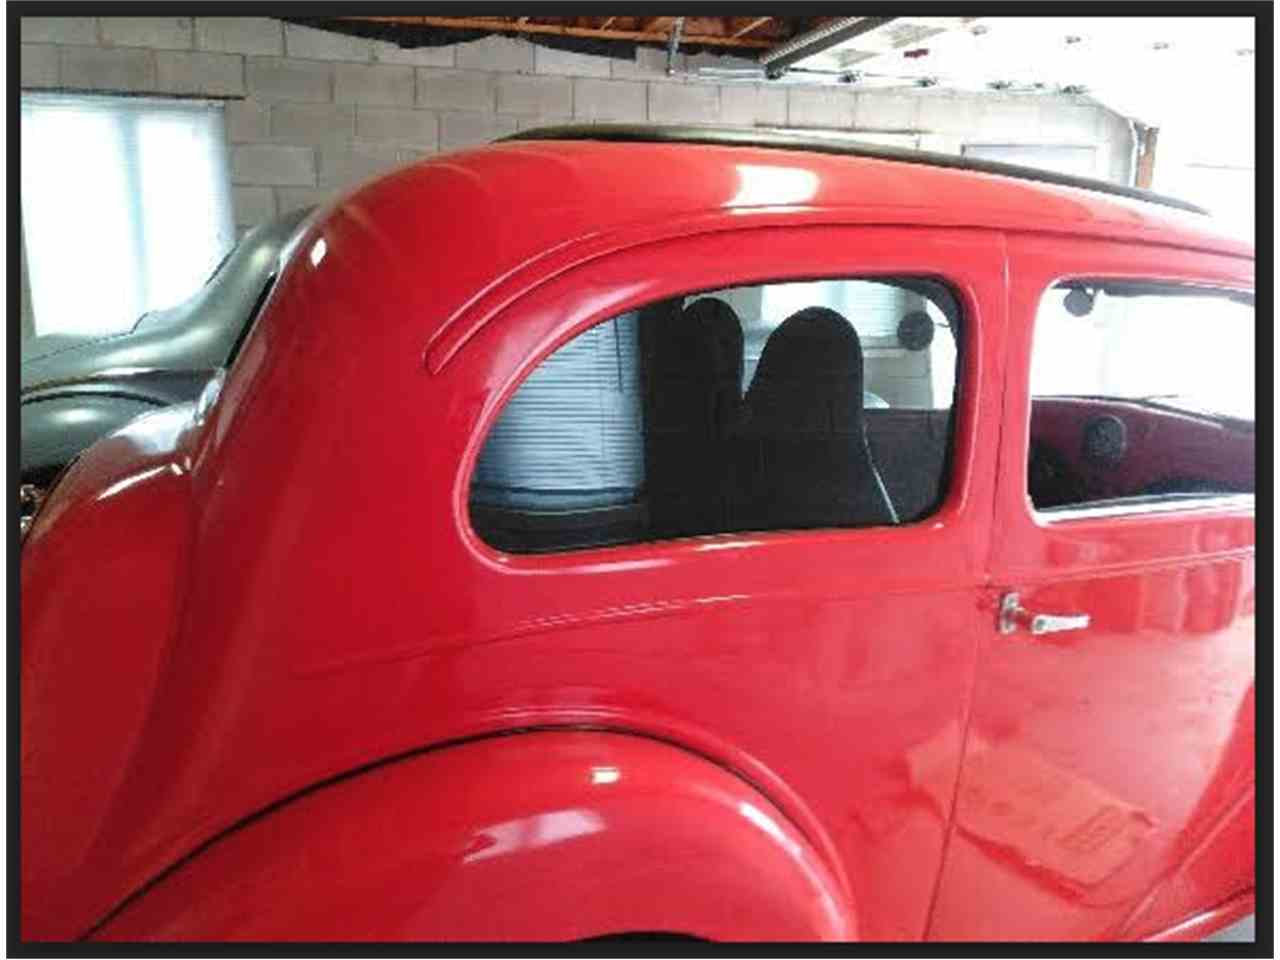 Large Picture of '48 Anglia Street Rod located in Ontario - $26,000.00 Offered by a Private Seller - JOGM